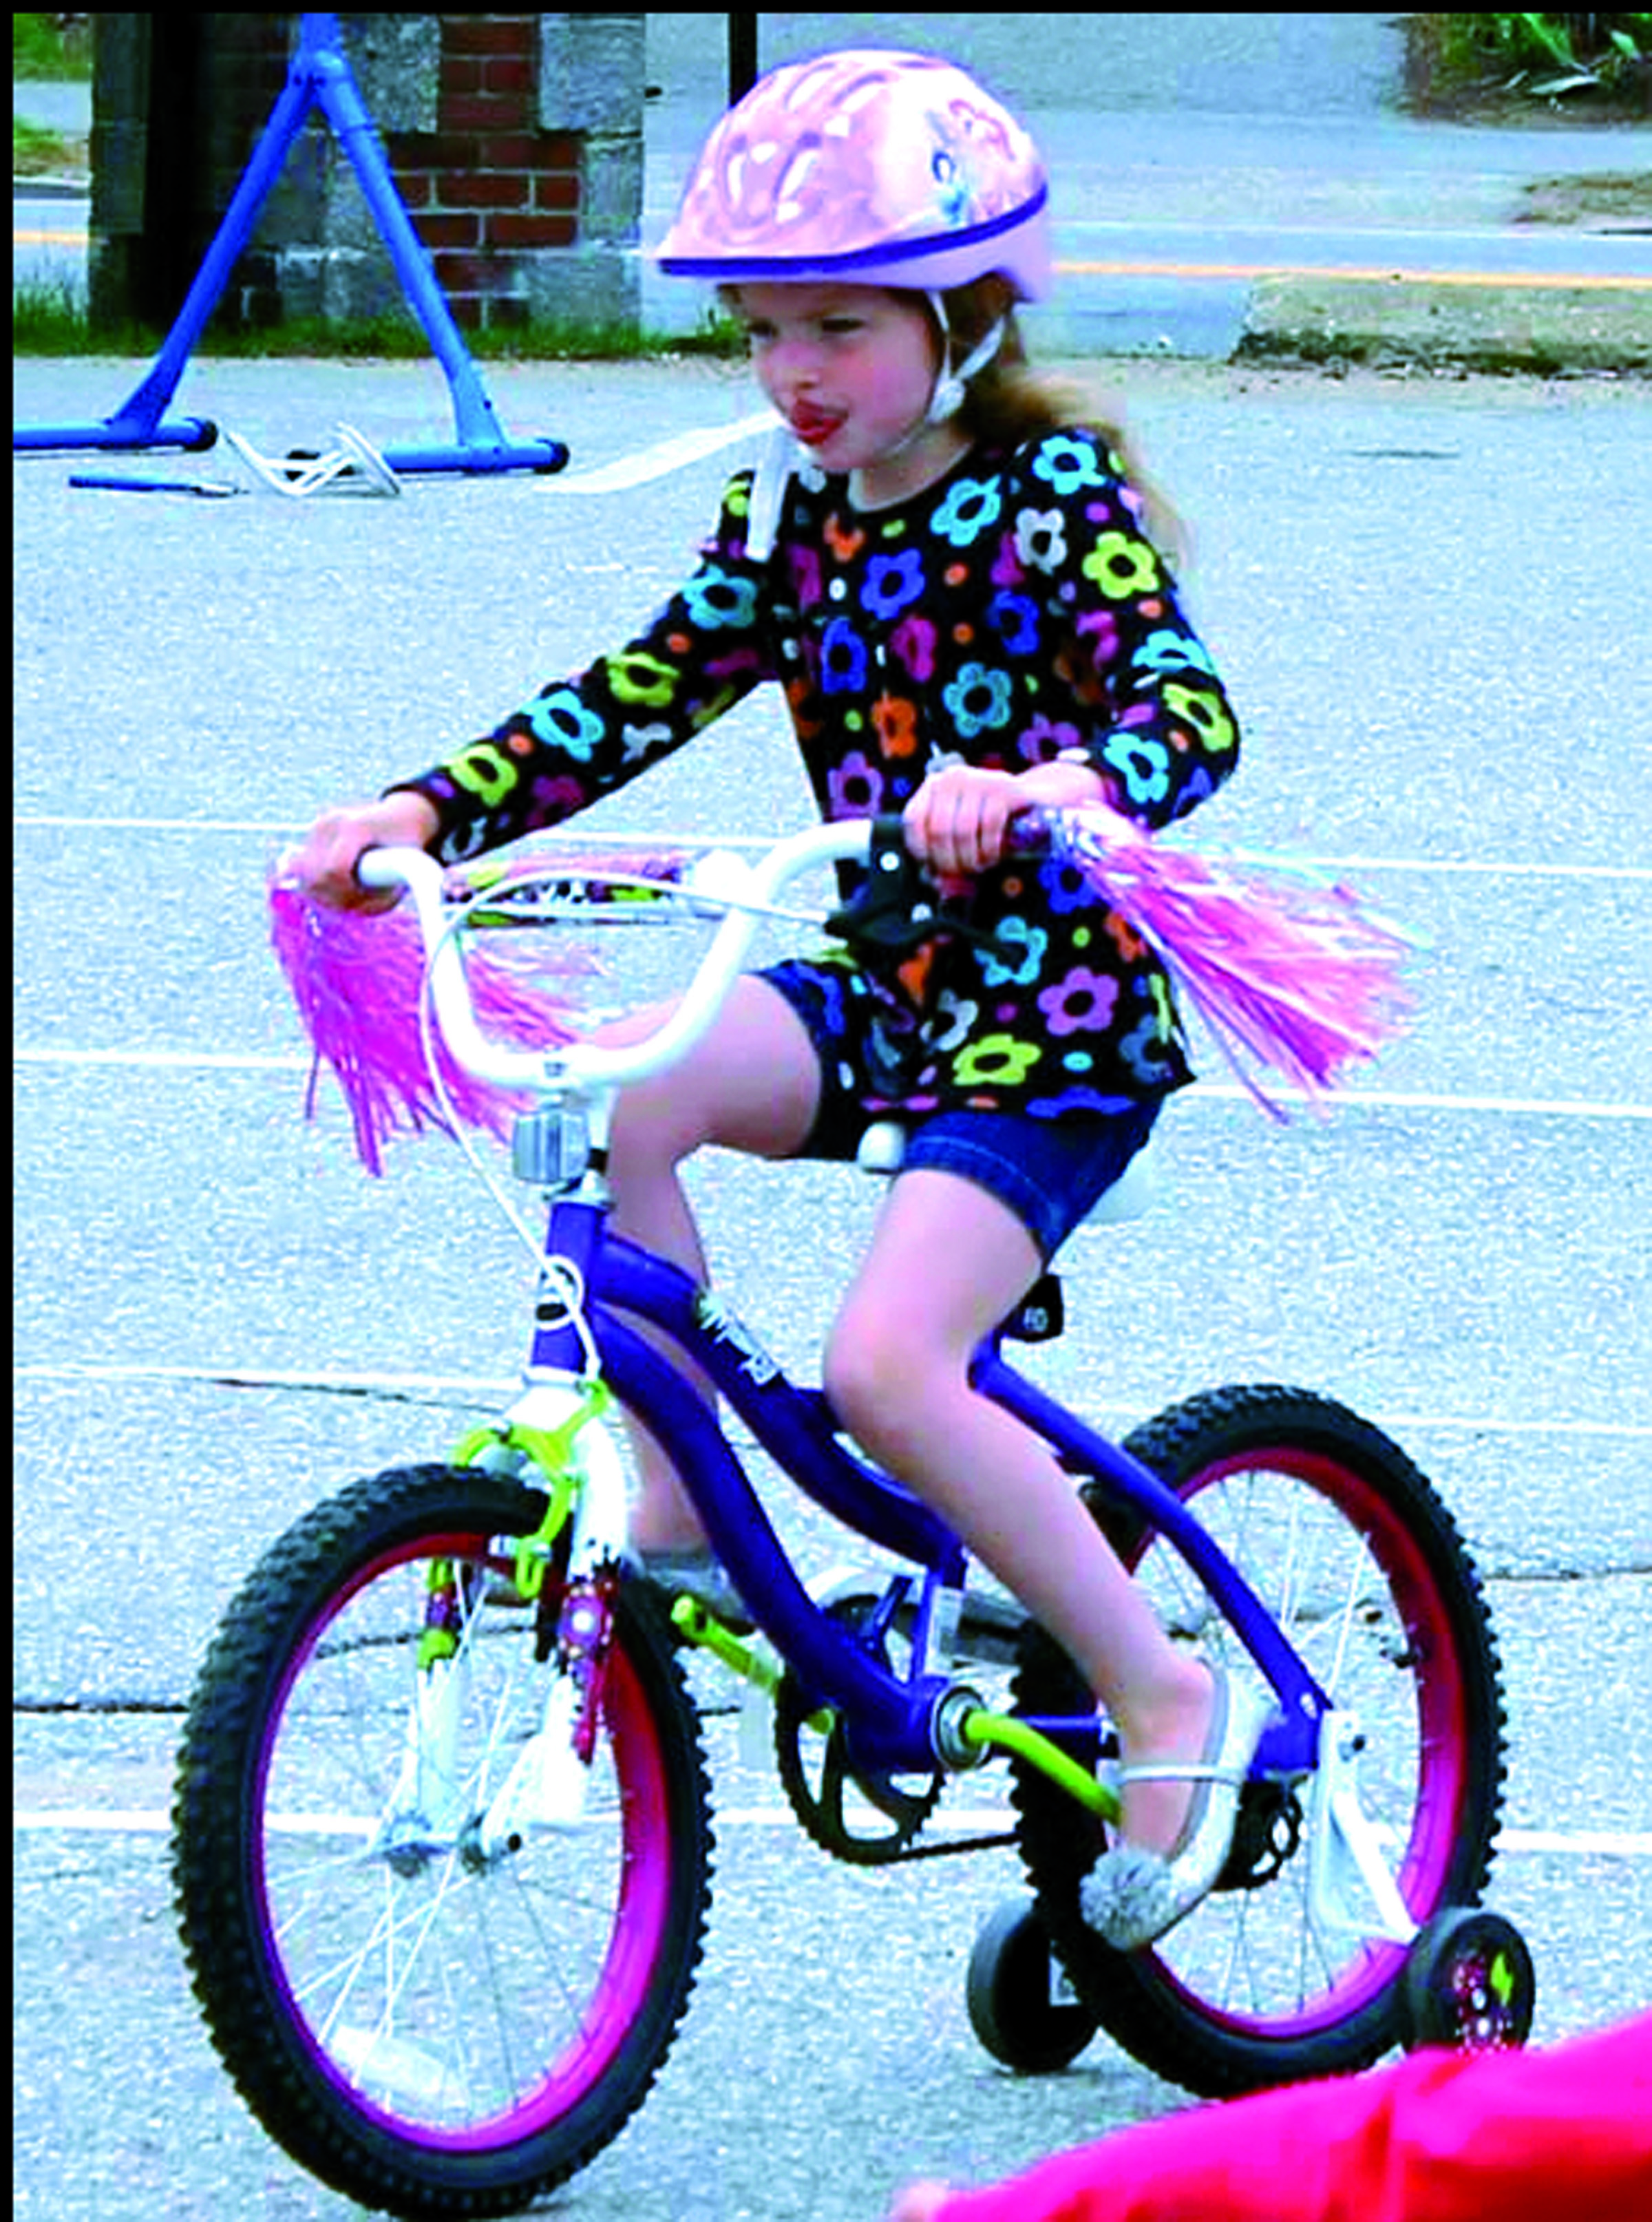 Cub Scout Pack 308's annual Bike Rodeo will be held from 9 a.m. to noon Saturday at Biddeford Primary School. The event is free and open to all kids in Grades 1 through Grade 5 and will focus on teaching bike safety, riding instruction, and safe biking. ED PIERCE/Journal Tribune